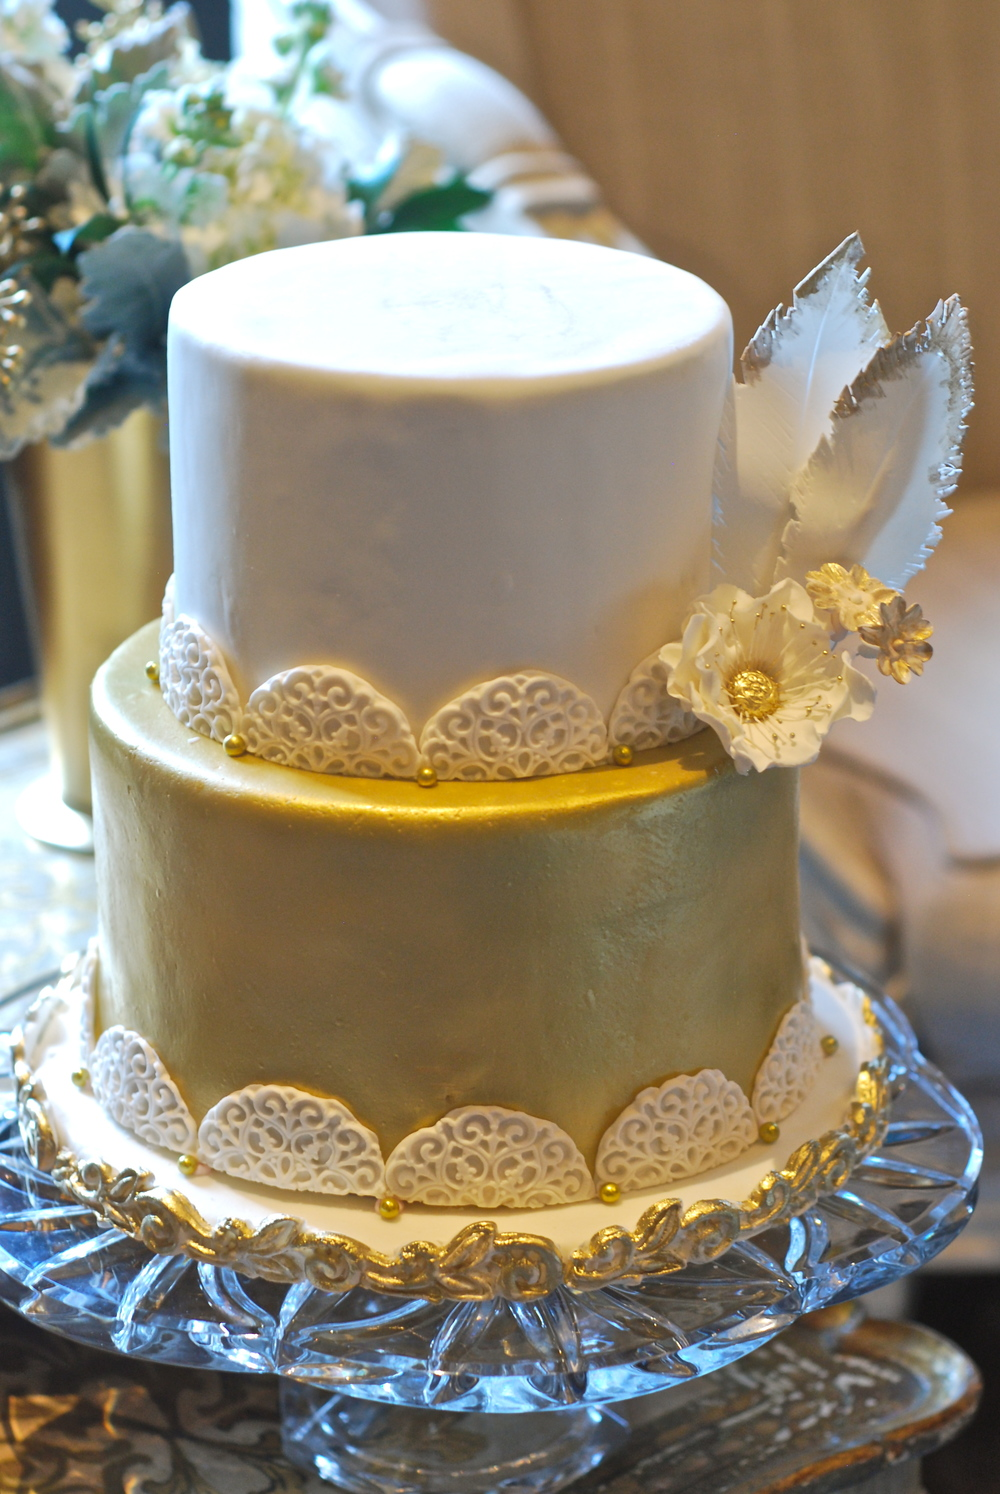 Two-teired German chocolate and carrot cake, decorated with gilded sugar anemone & feathers.